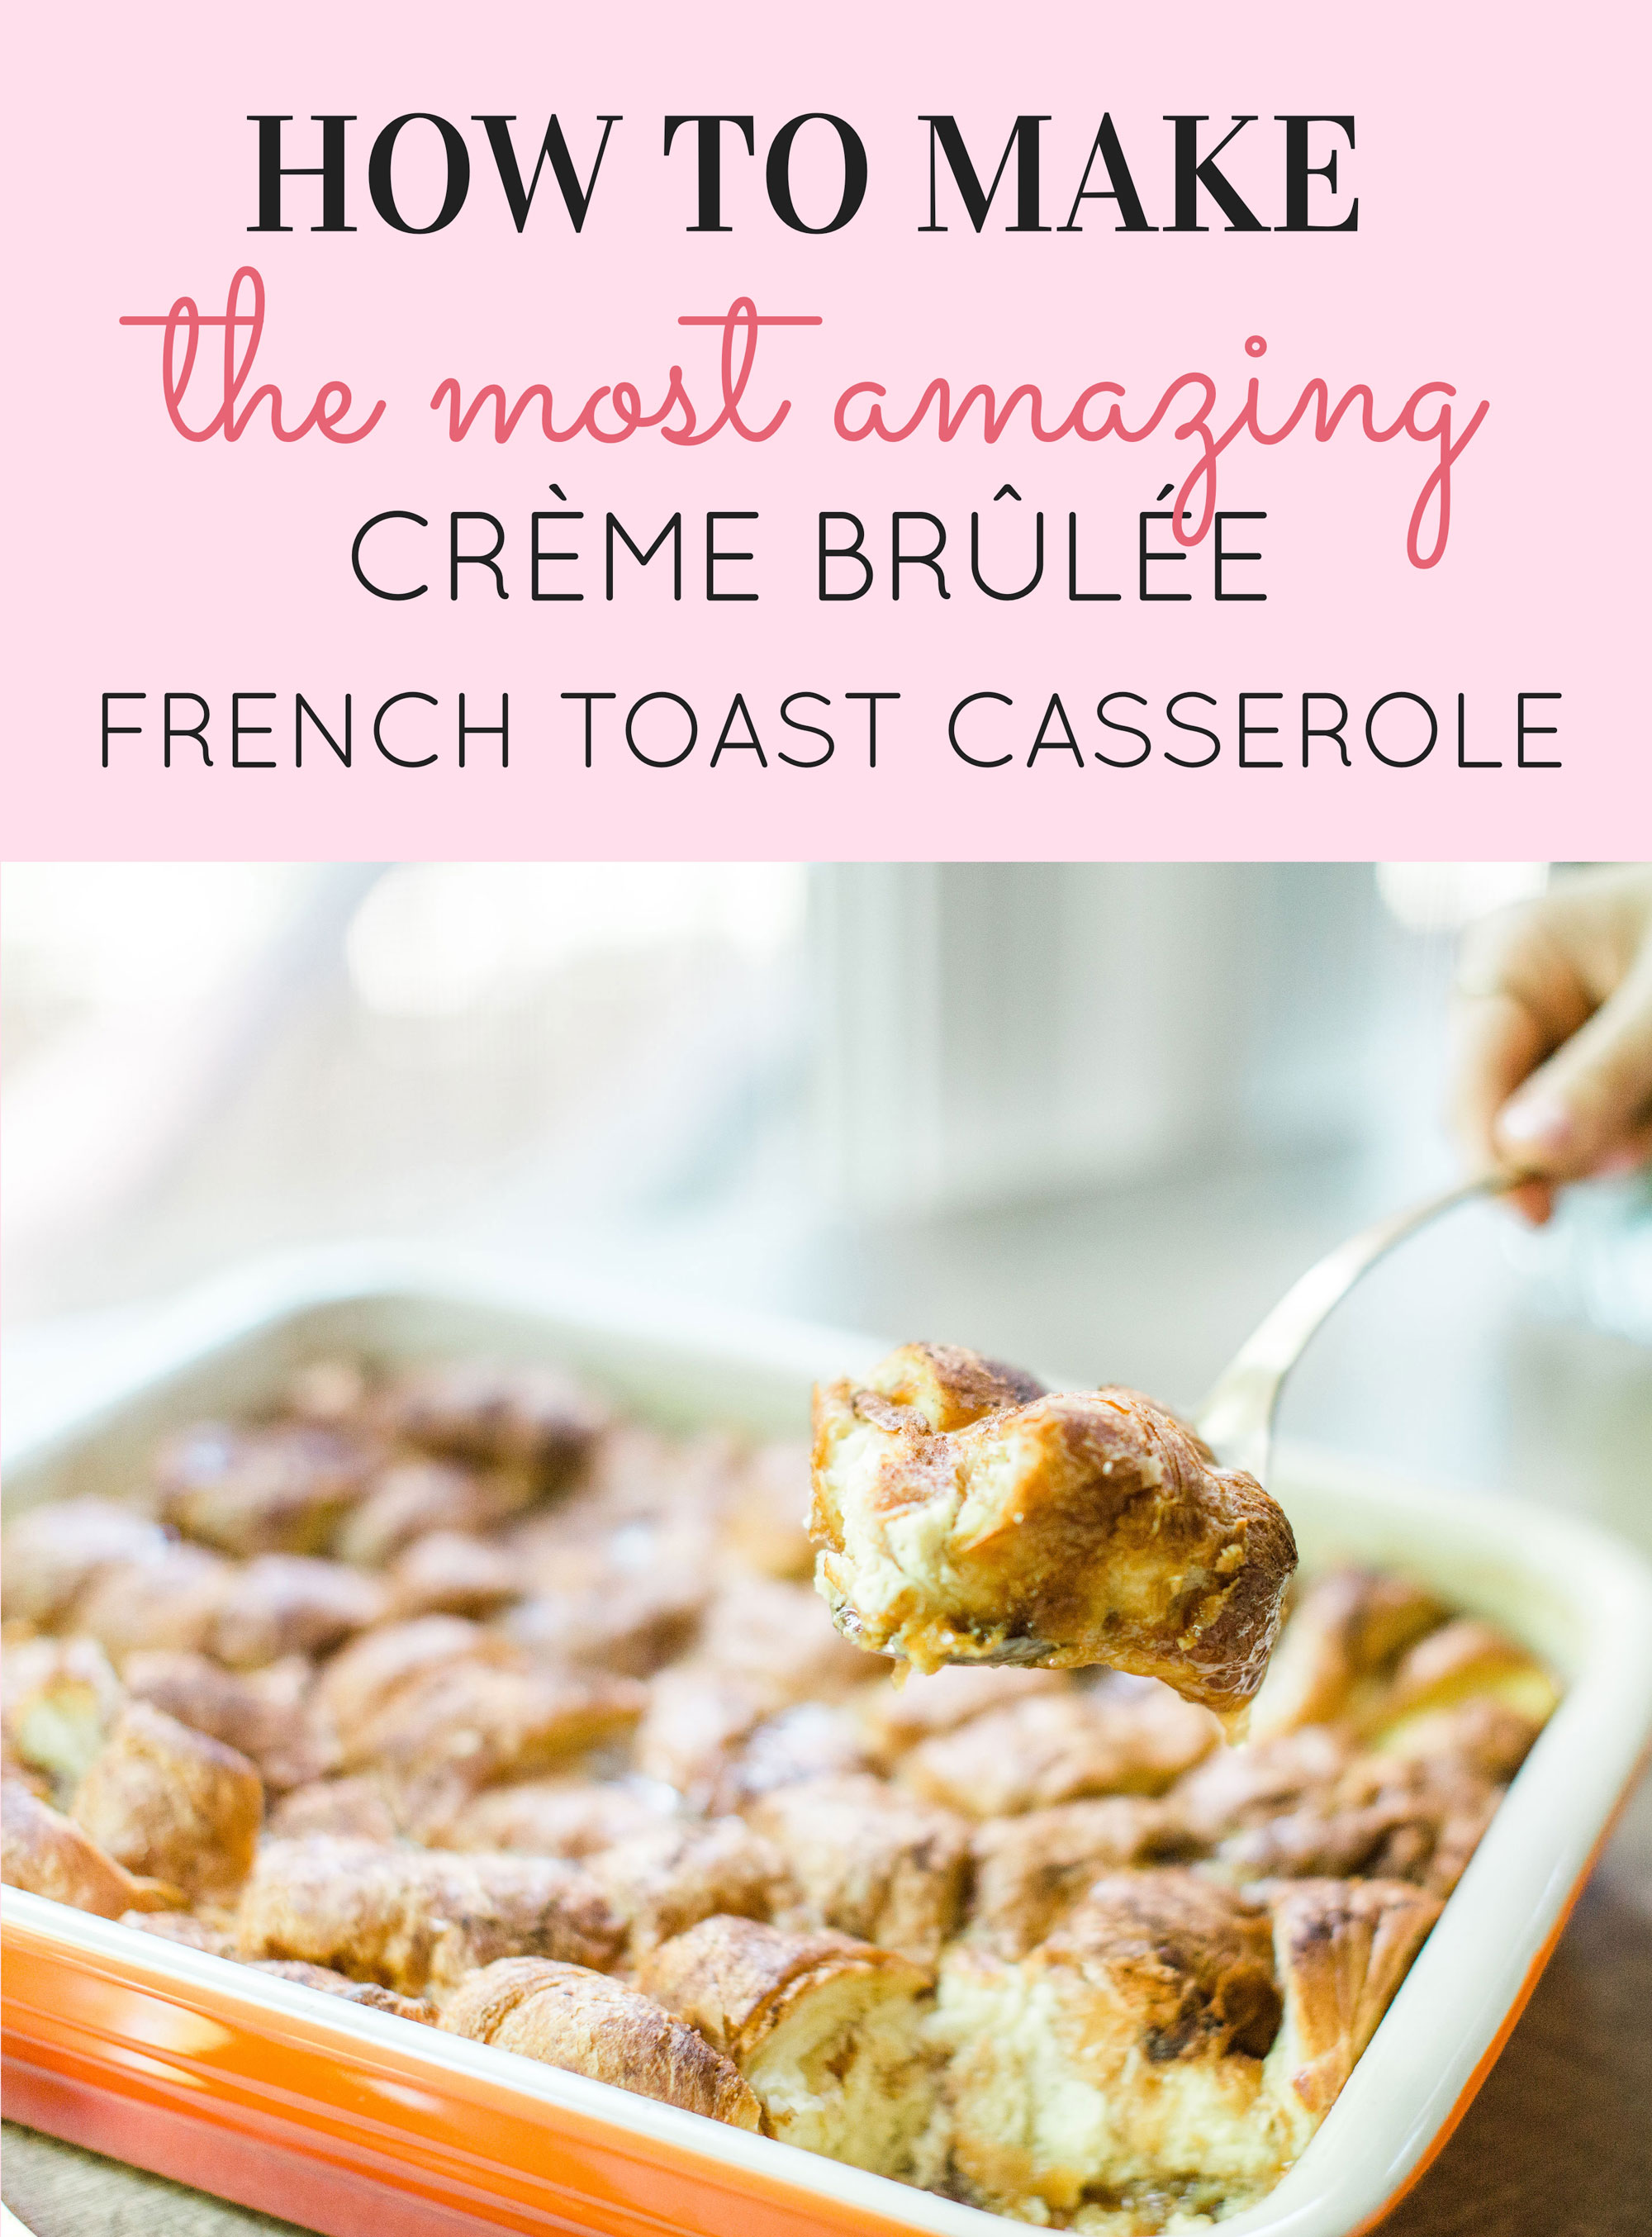 Casserole Brulée The Most Amazing Crème Brûlée French Toast Casserole Ever